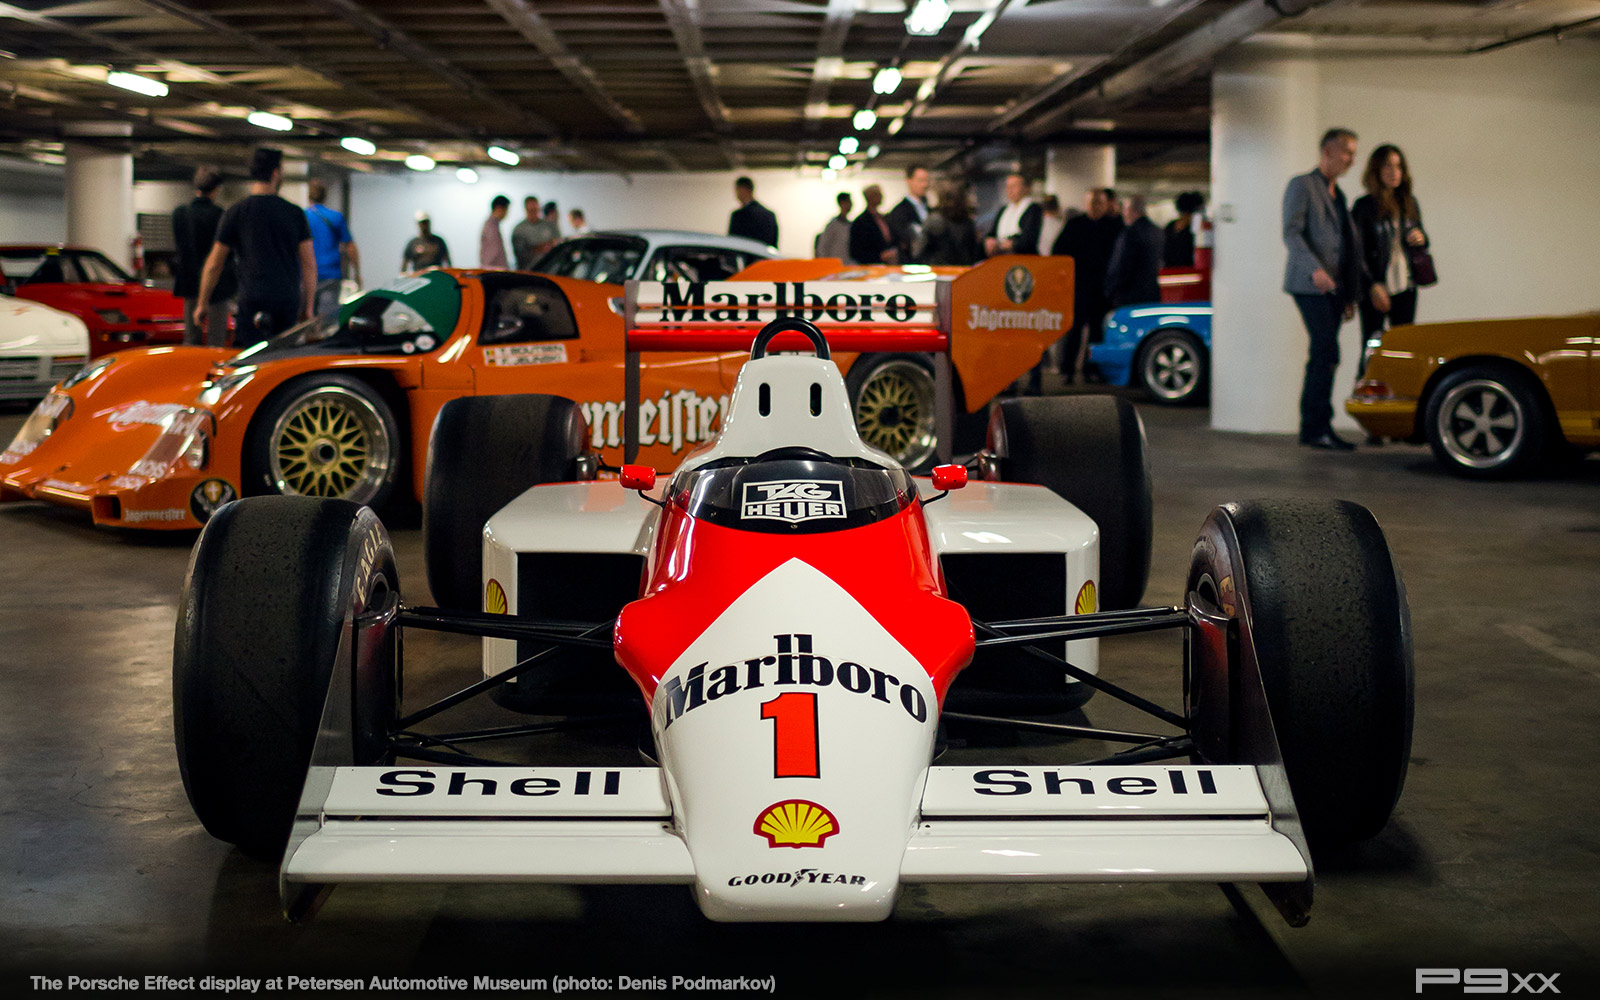 2018-the-porsche-effect-petersen-museum-dpod-326